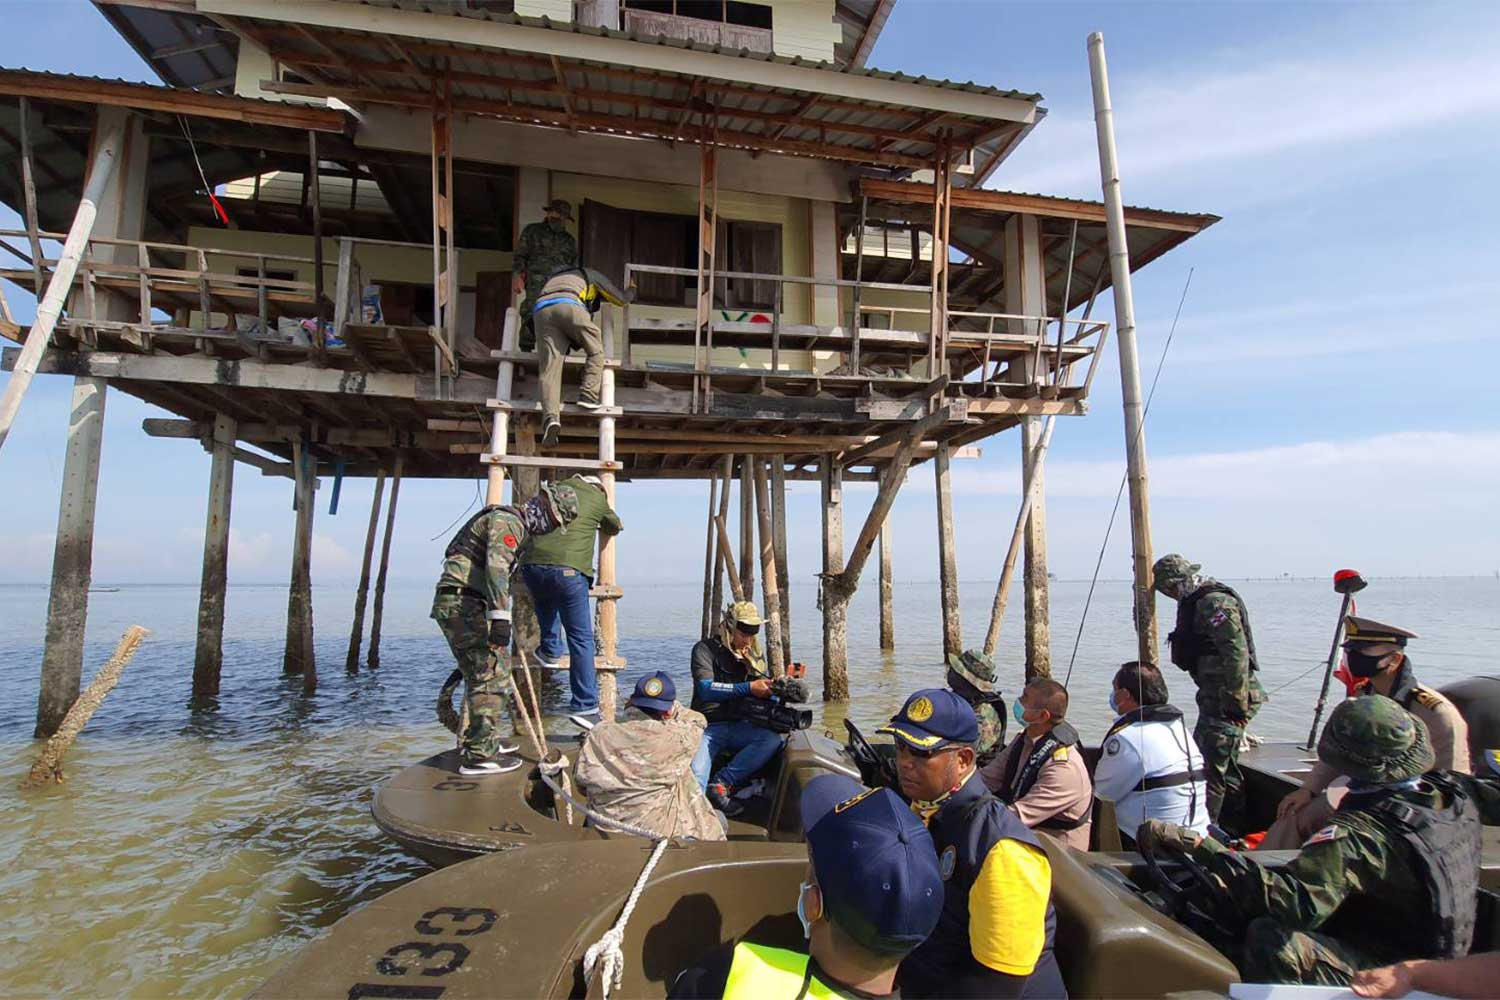 Navy sailors post a dismantle order at one of 176 illegally built roofed platforms in the public waters of Bandon Bay in Surat Thani on Tuesday. (Photo: Supapong Chaolan)